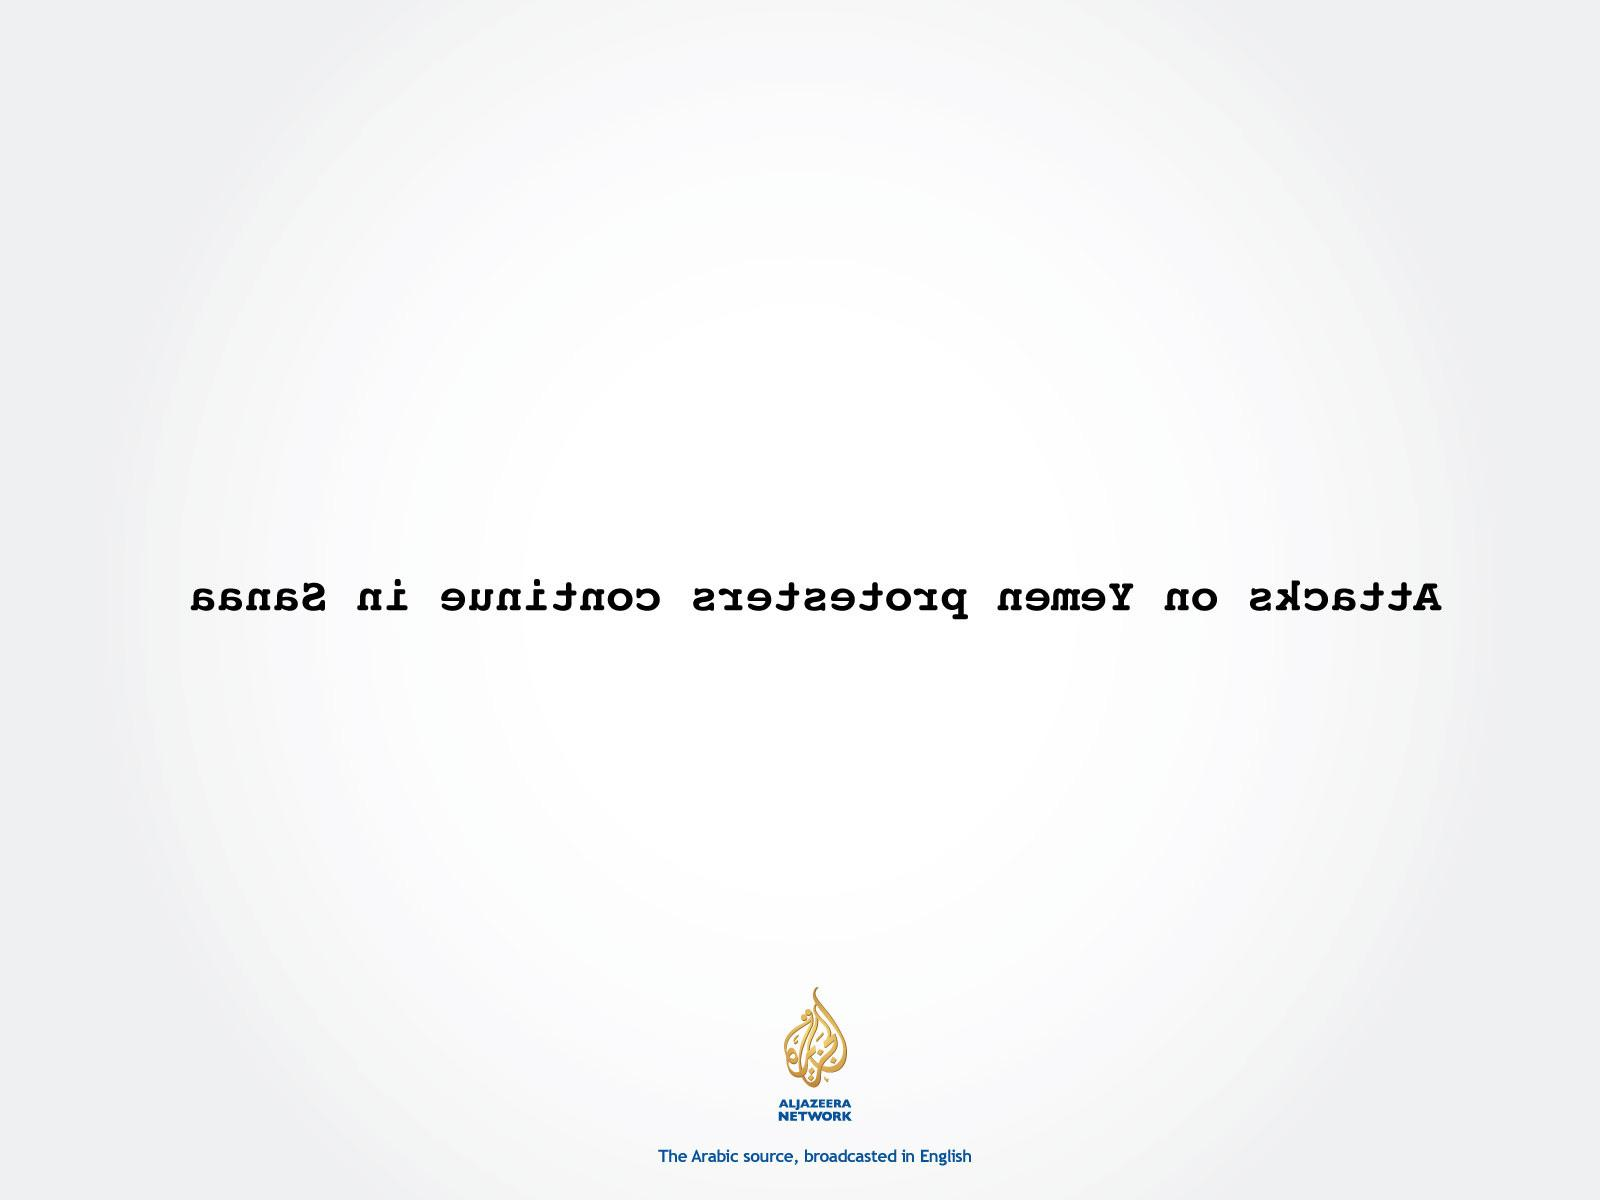 Aljazeera Print Ad -  The Arabic source, broadcasted in English, 2